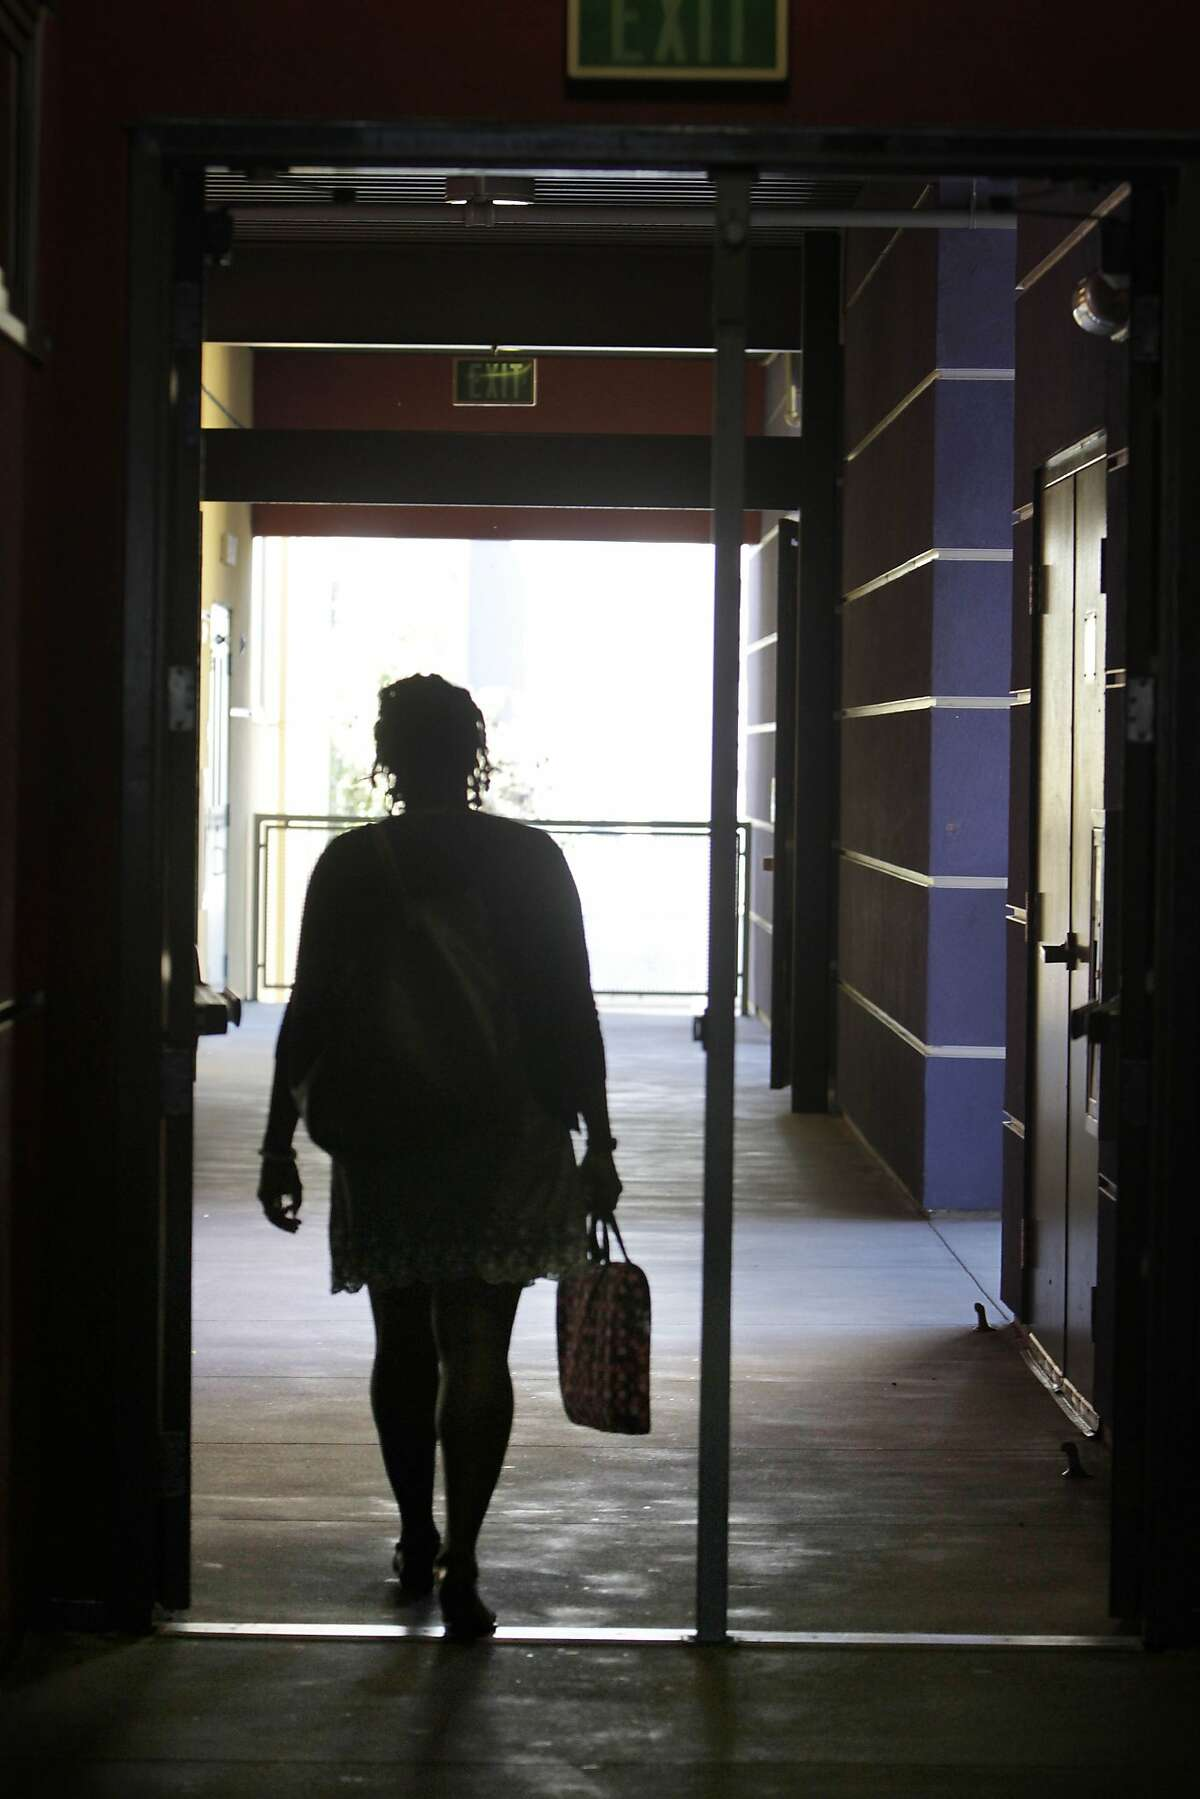 New SFUSD teacher Ashli Duncan walks through the hallway as she walks to a professional development meeting for staff at Bessie Carmichael Elementary School on Wednesday, August 12, 2015 in San Francisco, Calif.